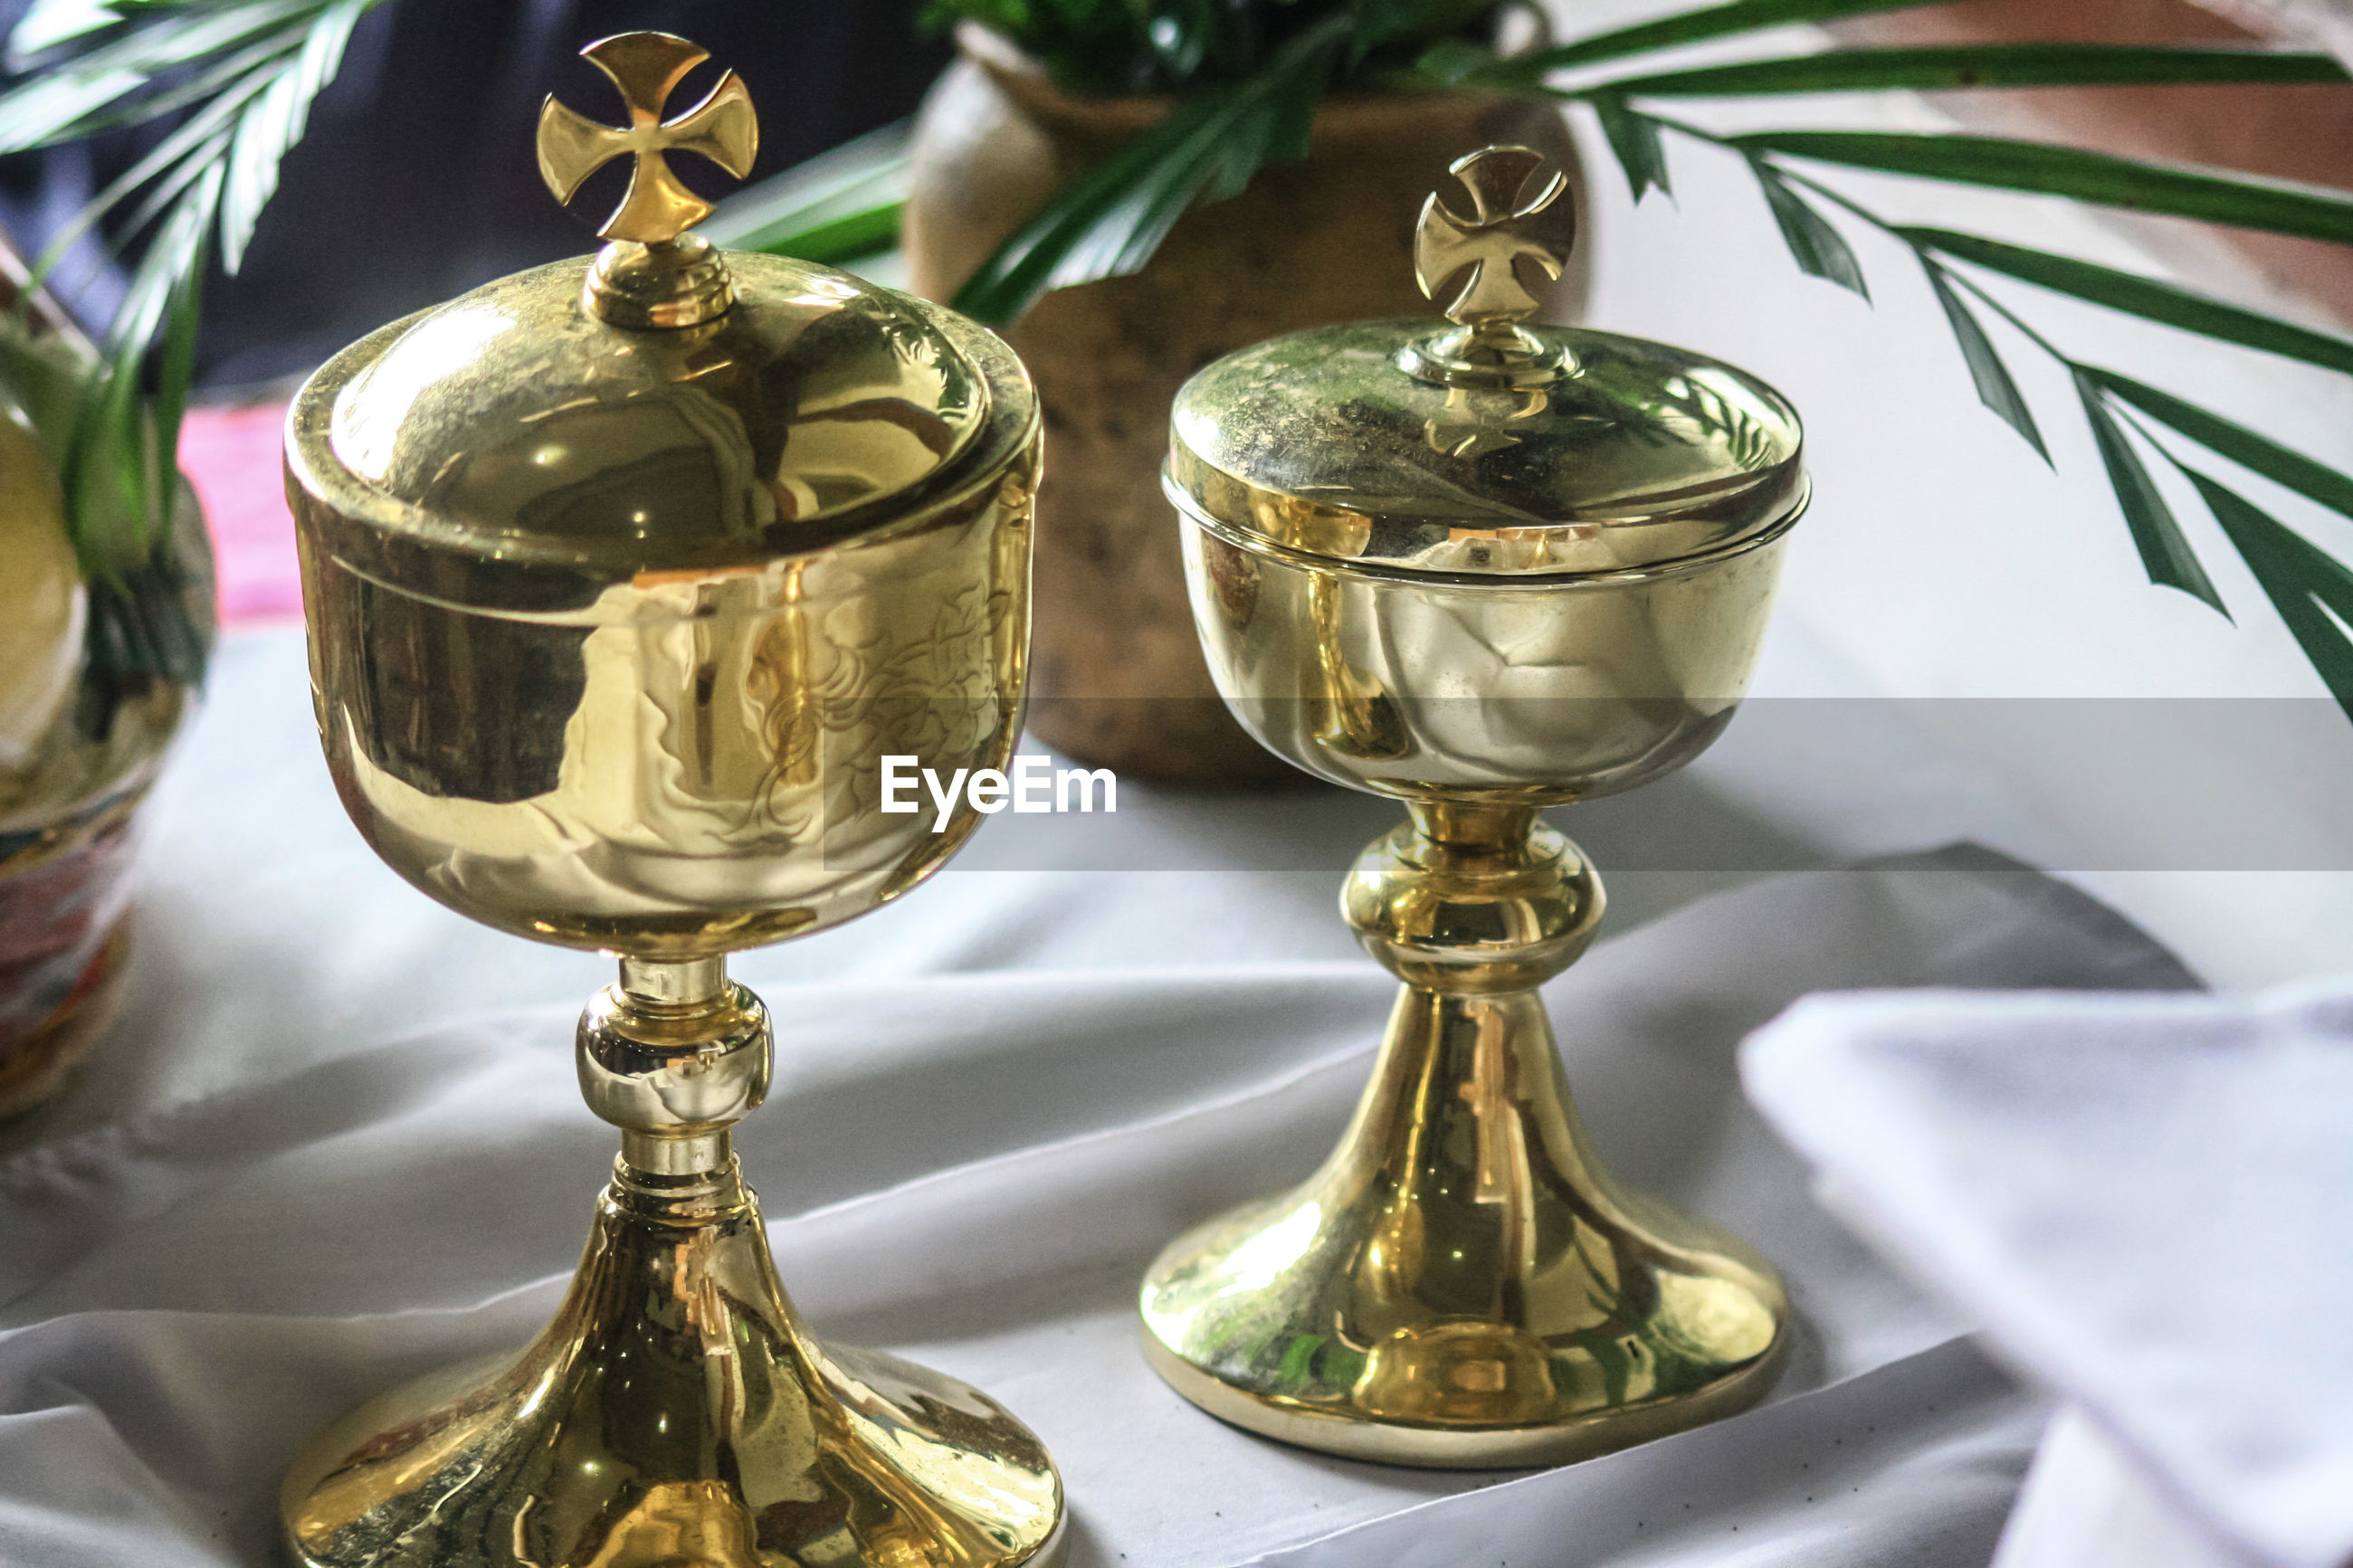 High angle view of communion cups on table